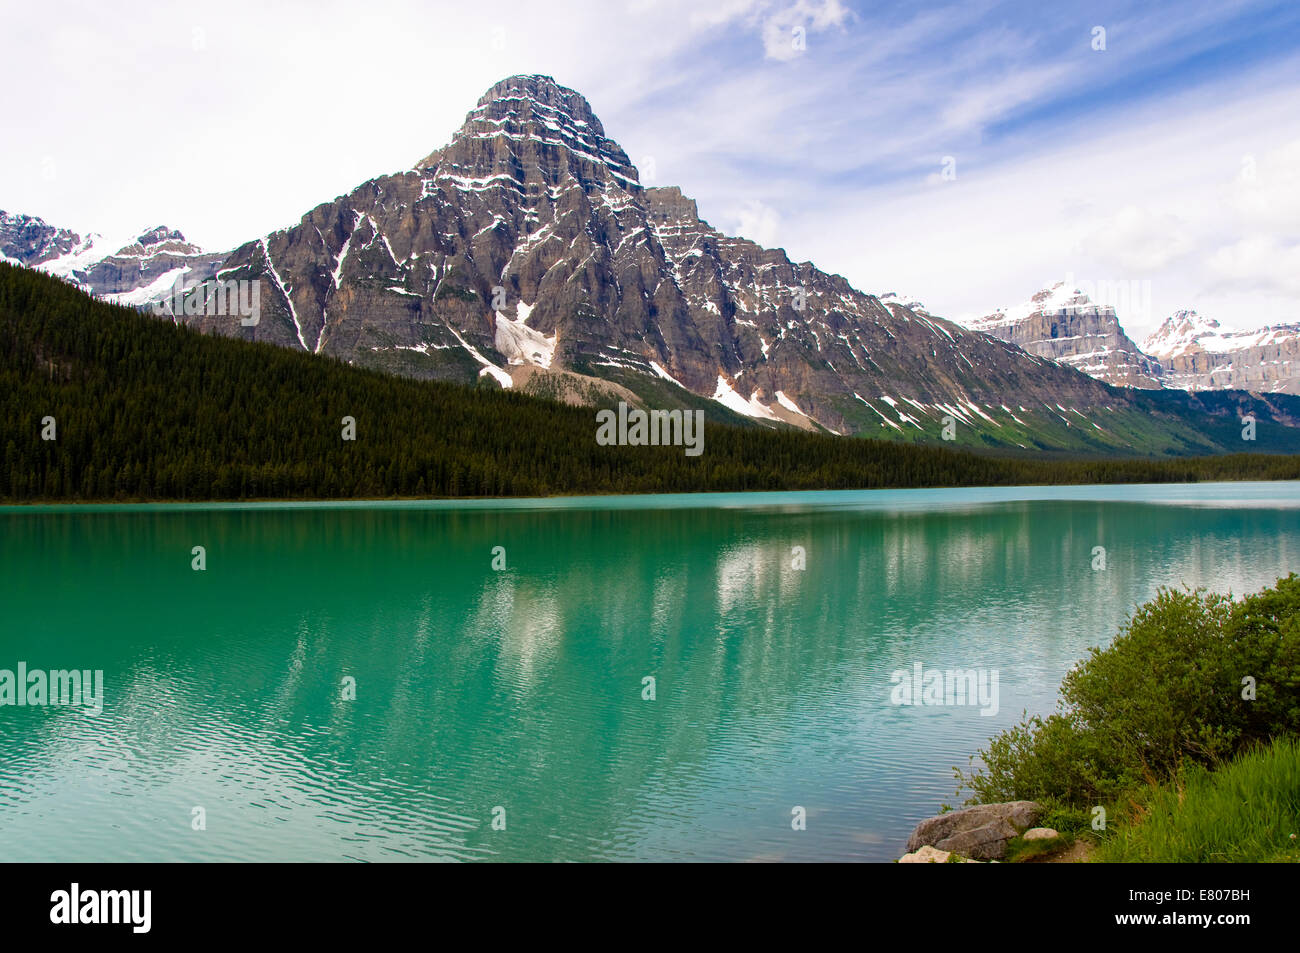 Waterfowl Lakes, Icefields Parkway, Banff, Alberta, Canada - Stock Image